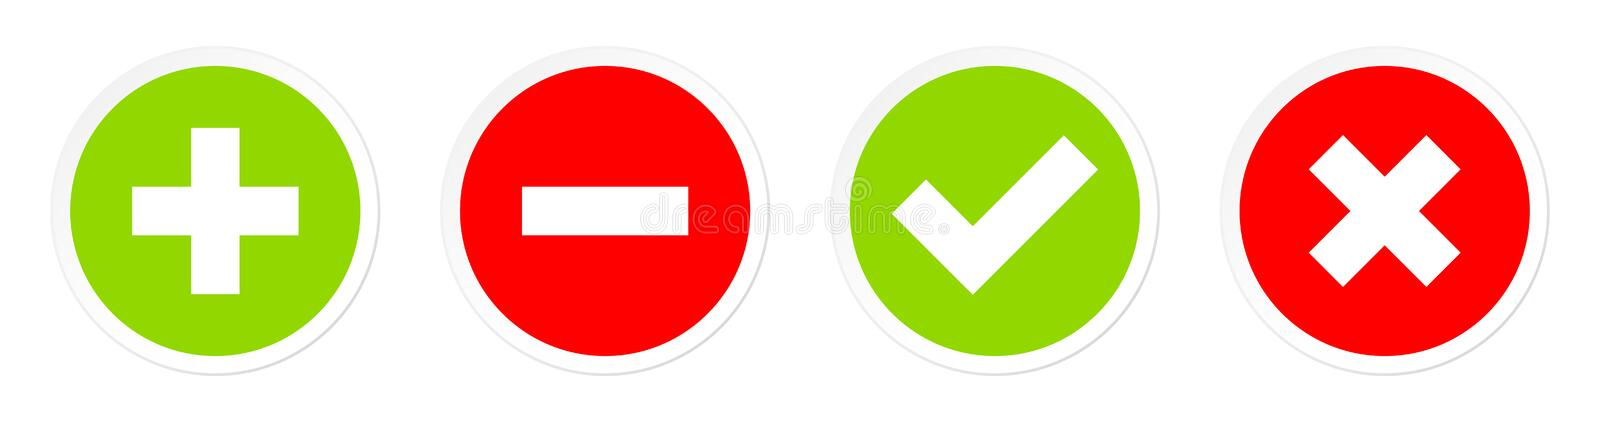 Set Of Four Buttons Plus Minus And Checkmarks Red And Green stock illustration